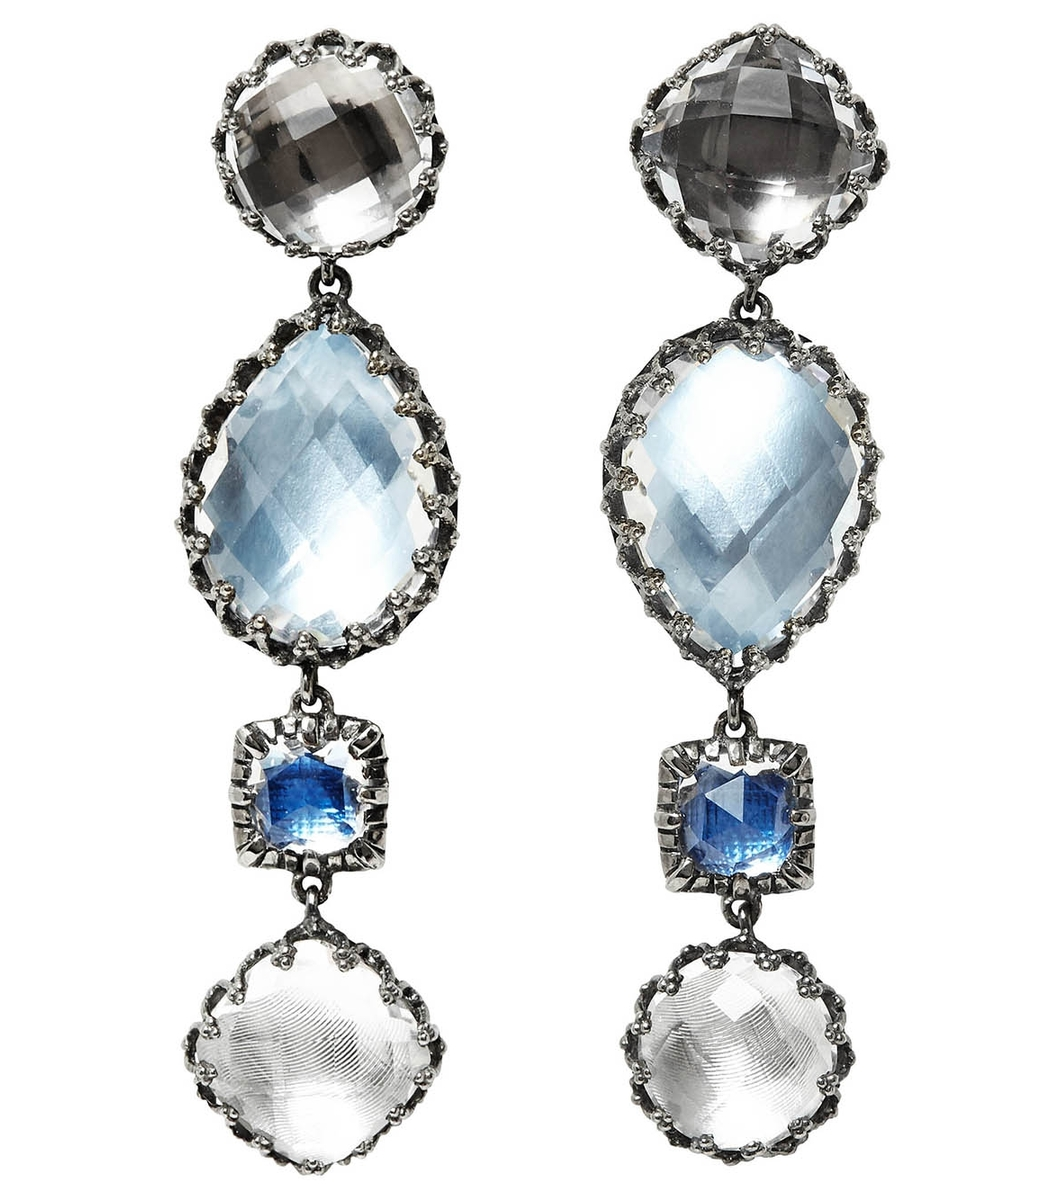 Larkspur & Hawk Sadie Four-Drop Earrings in White Foil r8icF1NO1